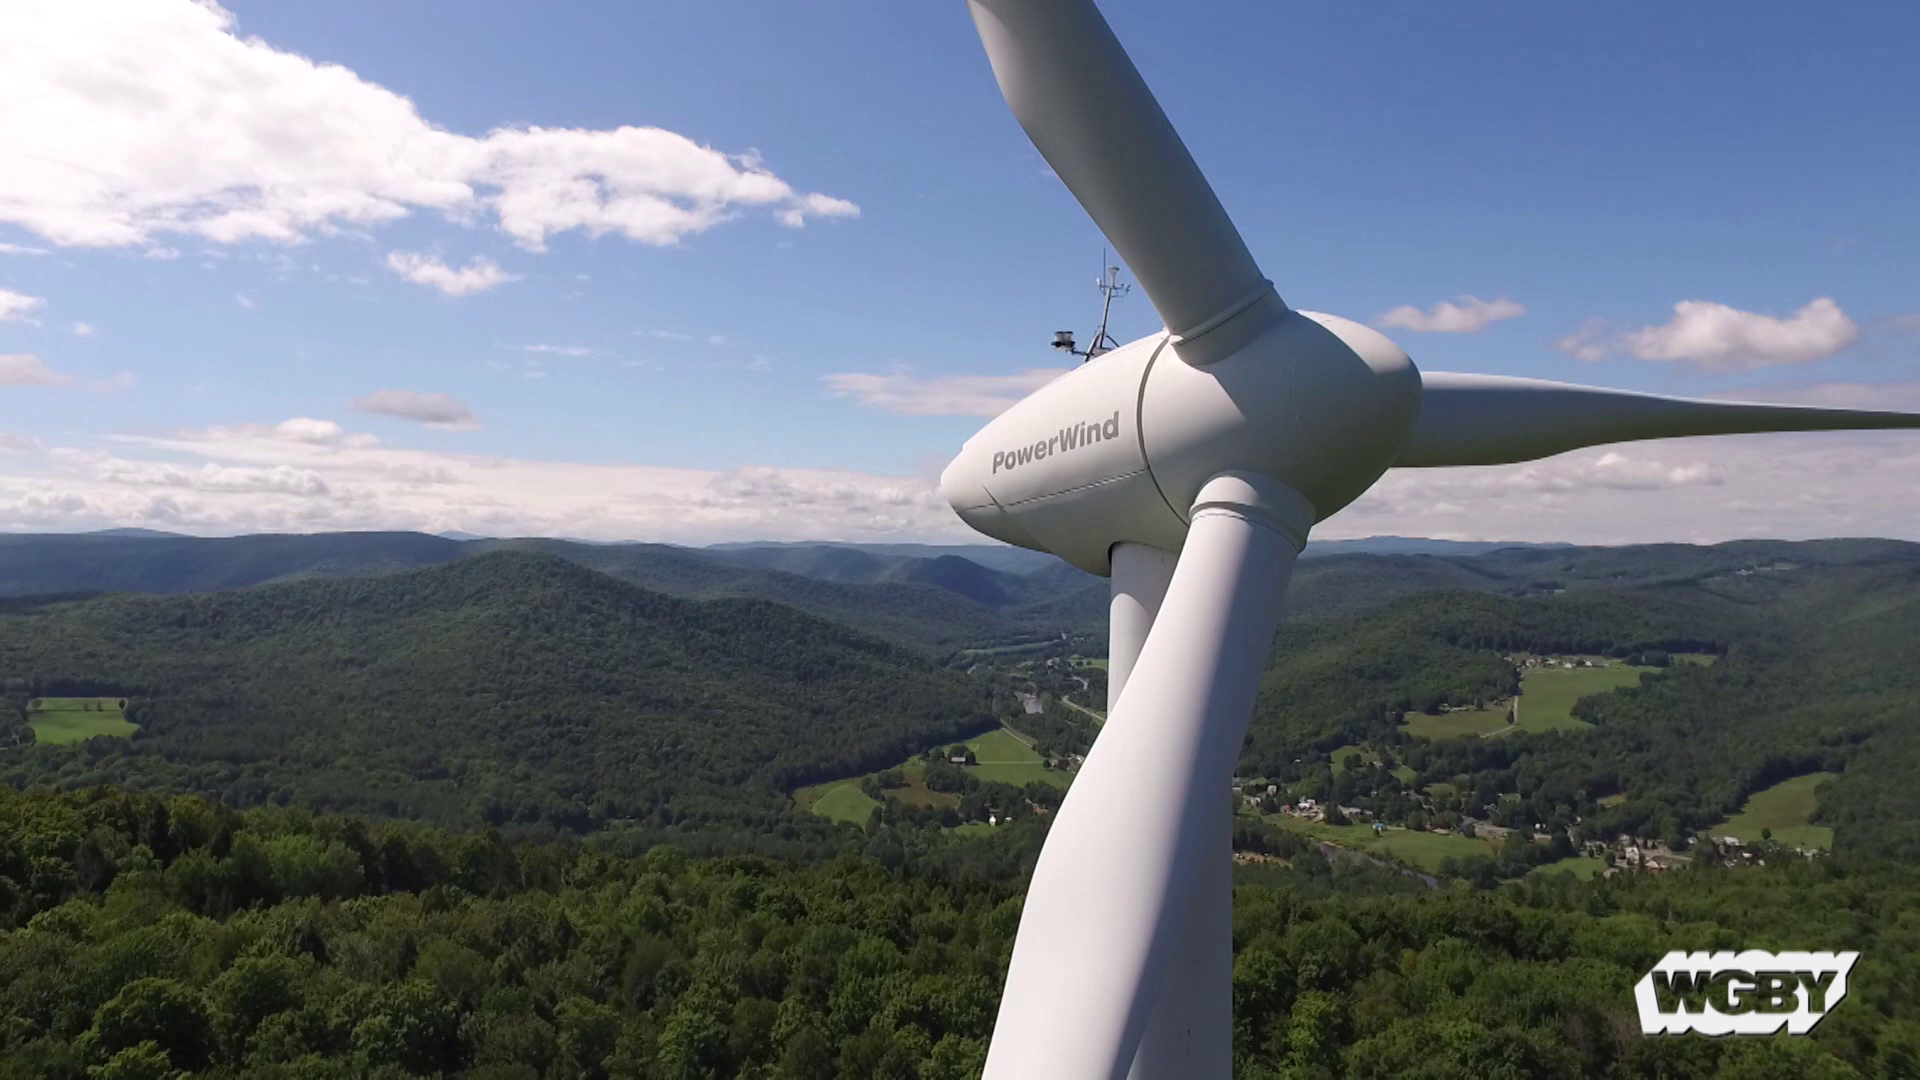 The Berkshire East Renewable Energy facility uses wind turbines and solar panels to generate enough power to operate the Charlemont, MA ski area.